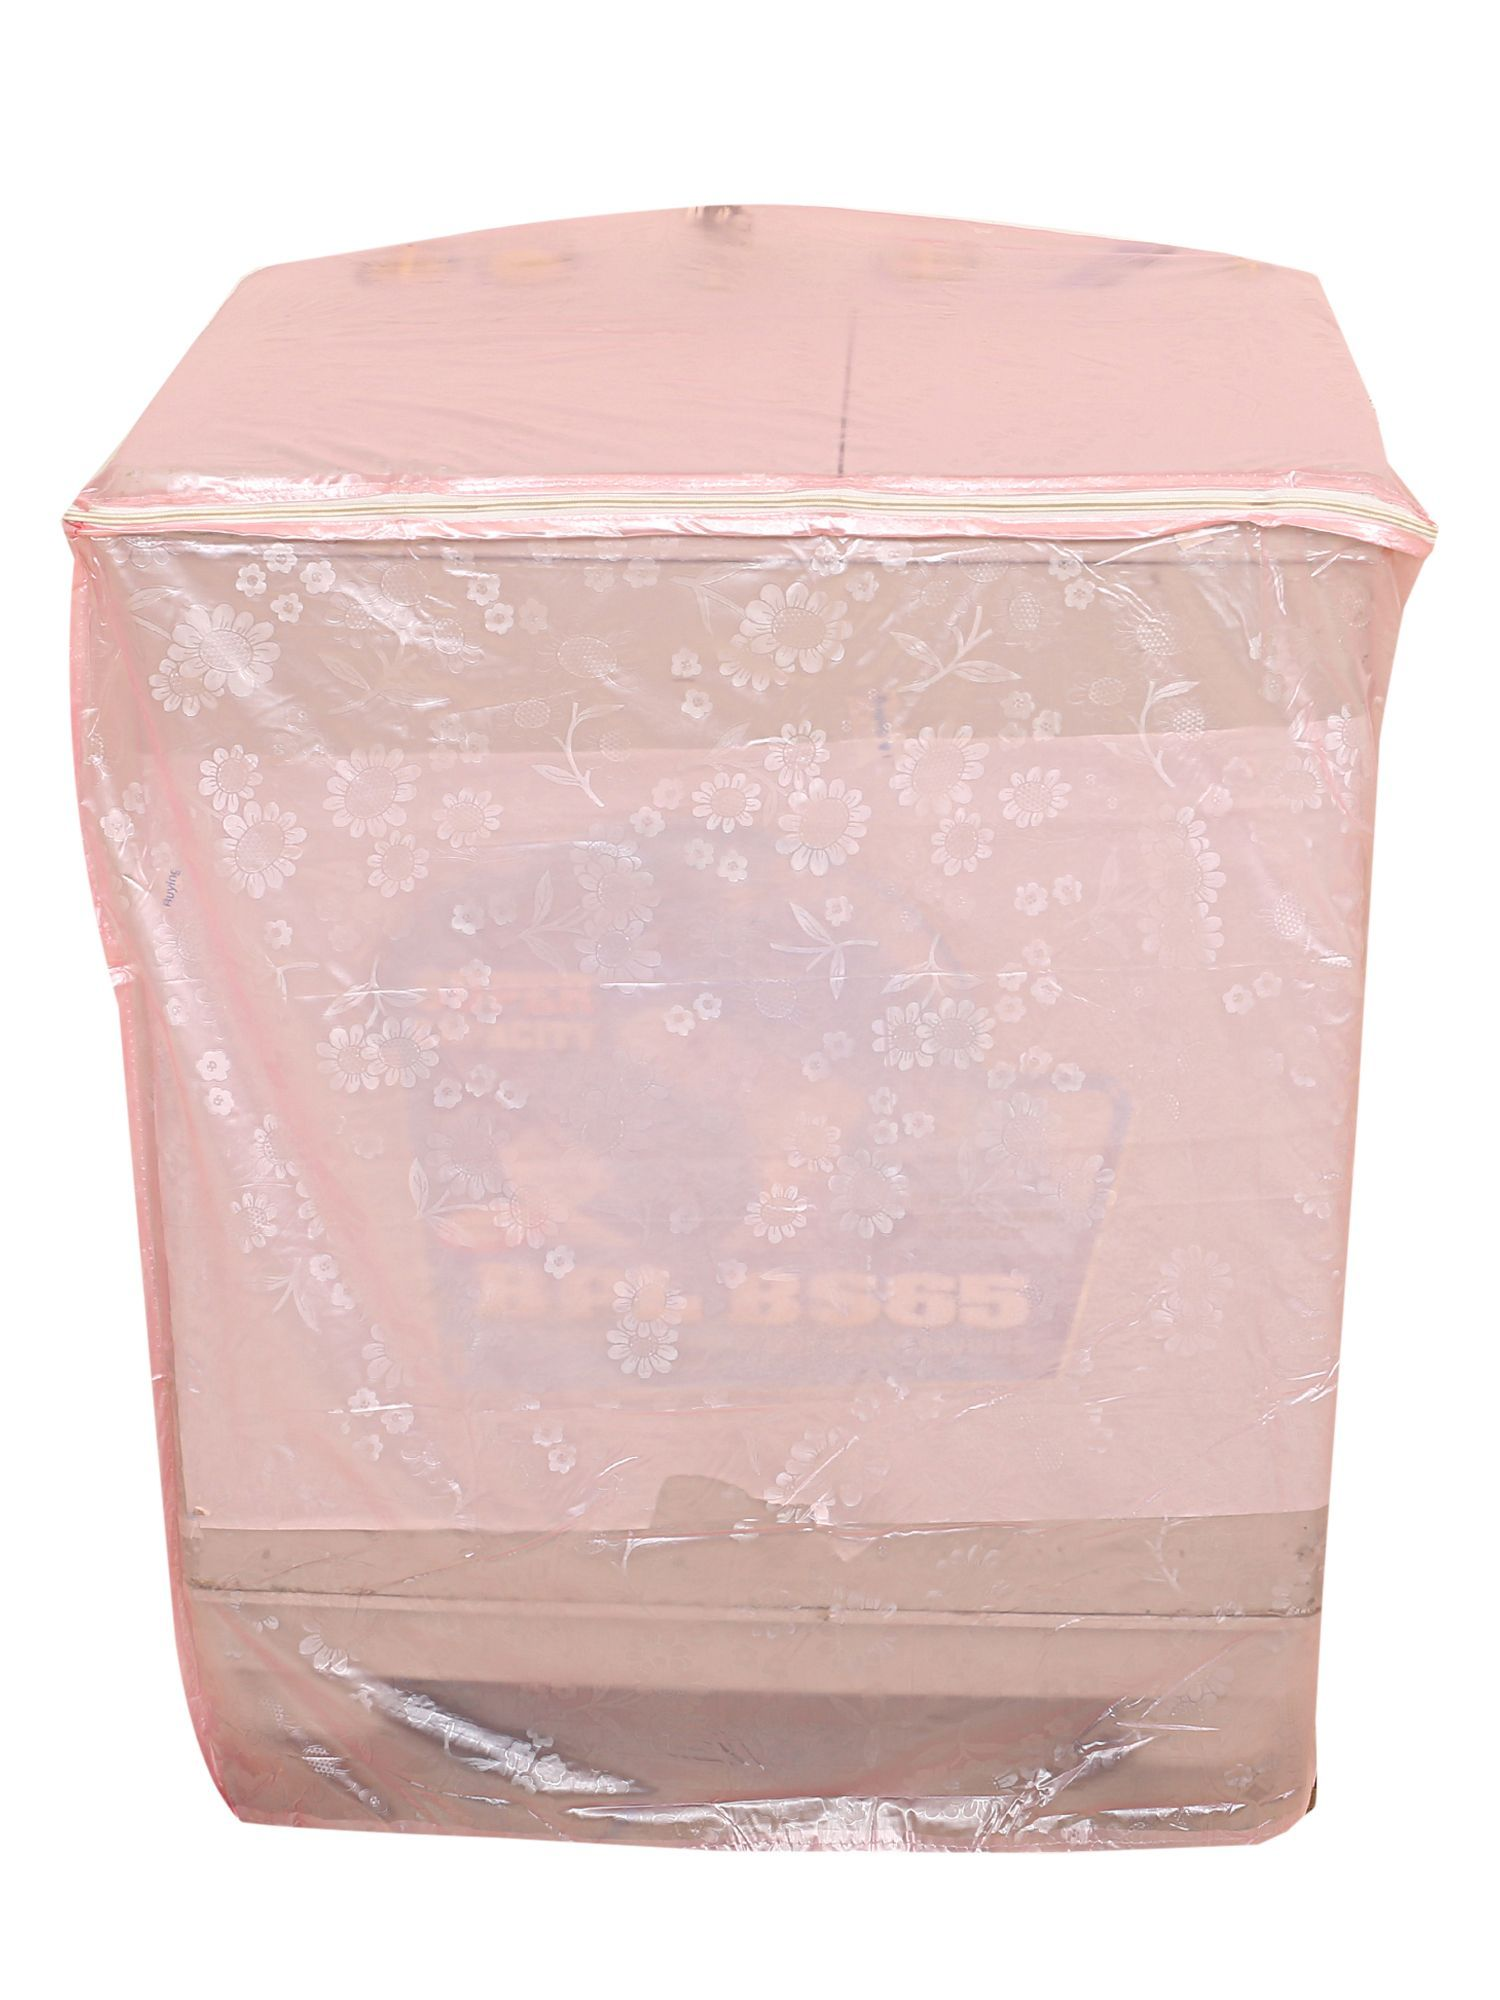 Kuber Industries Top Load Semi Automatic Washing Machine Cover (Light Pink)